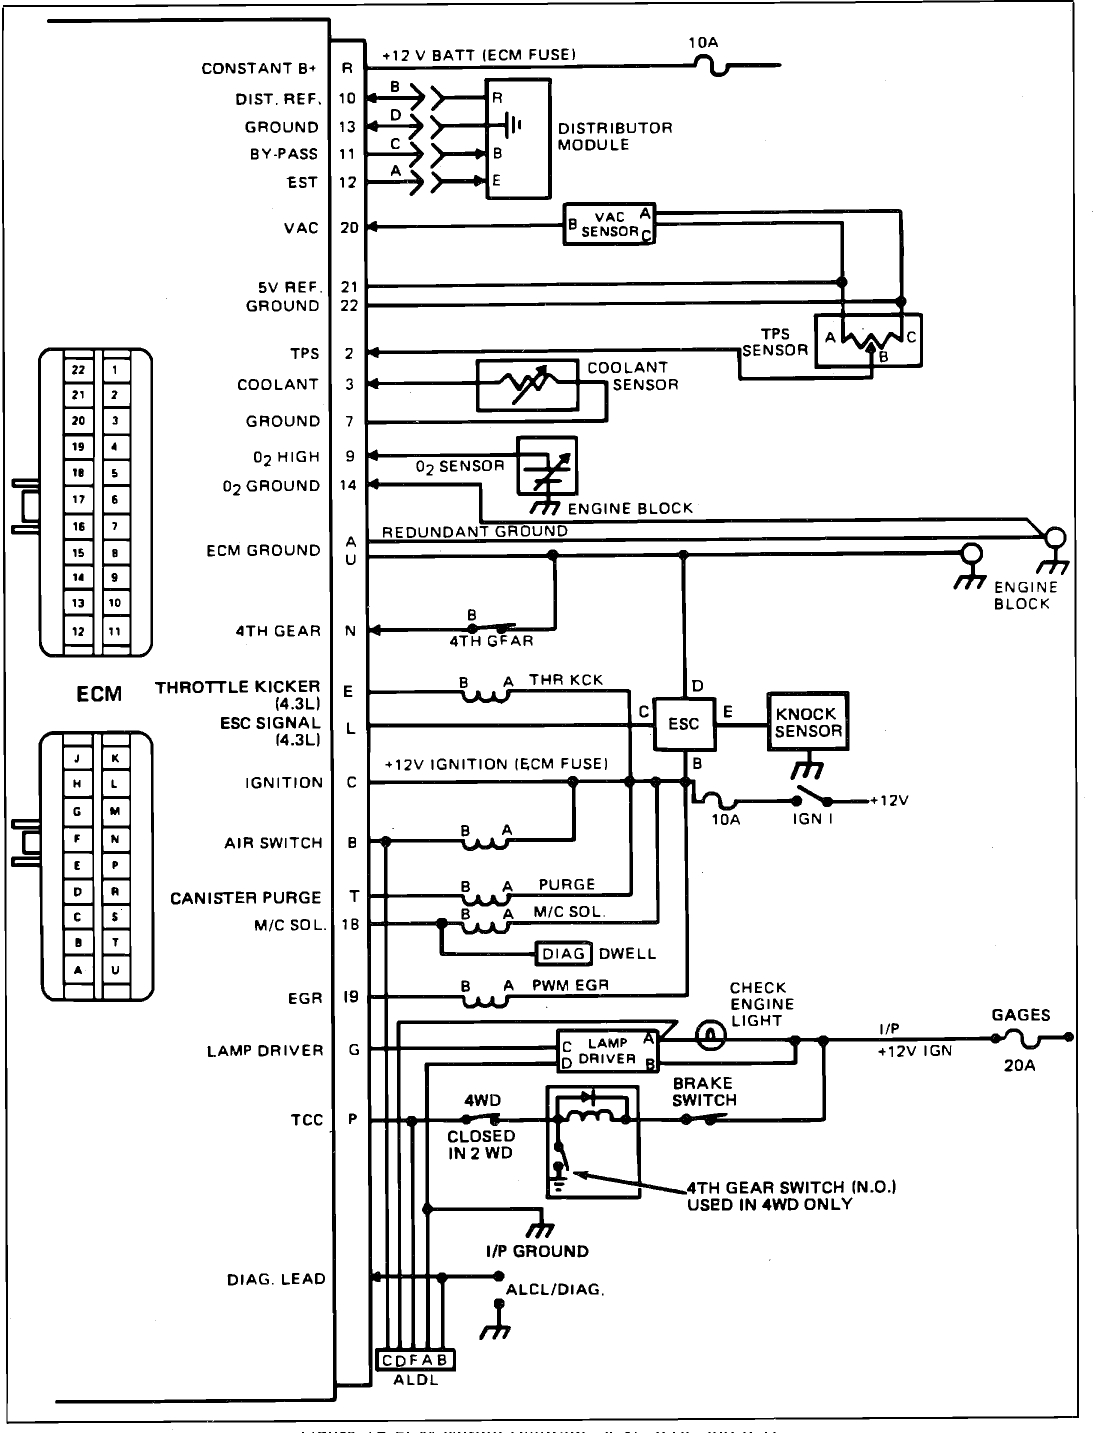 [DIAGRAM_3ER]  5DC3DFB For 2001 Silverado Fuse Box | Wiring Library | 1997 Dodge Ram Fuse Box 2006 1500 Johnywheels |  | Wiring Library